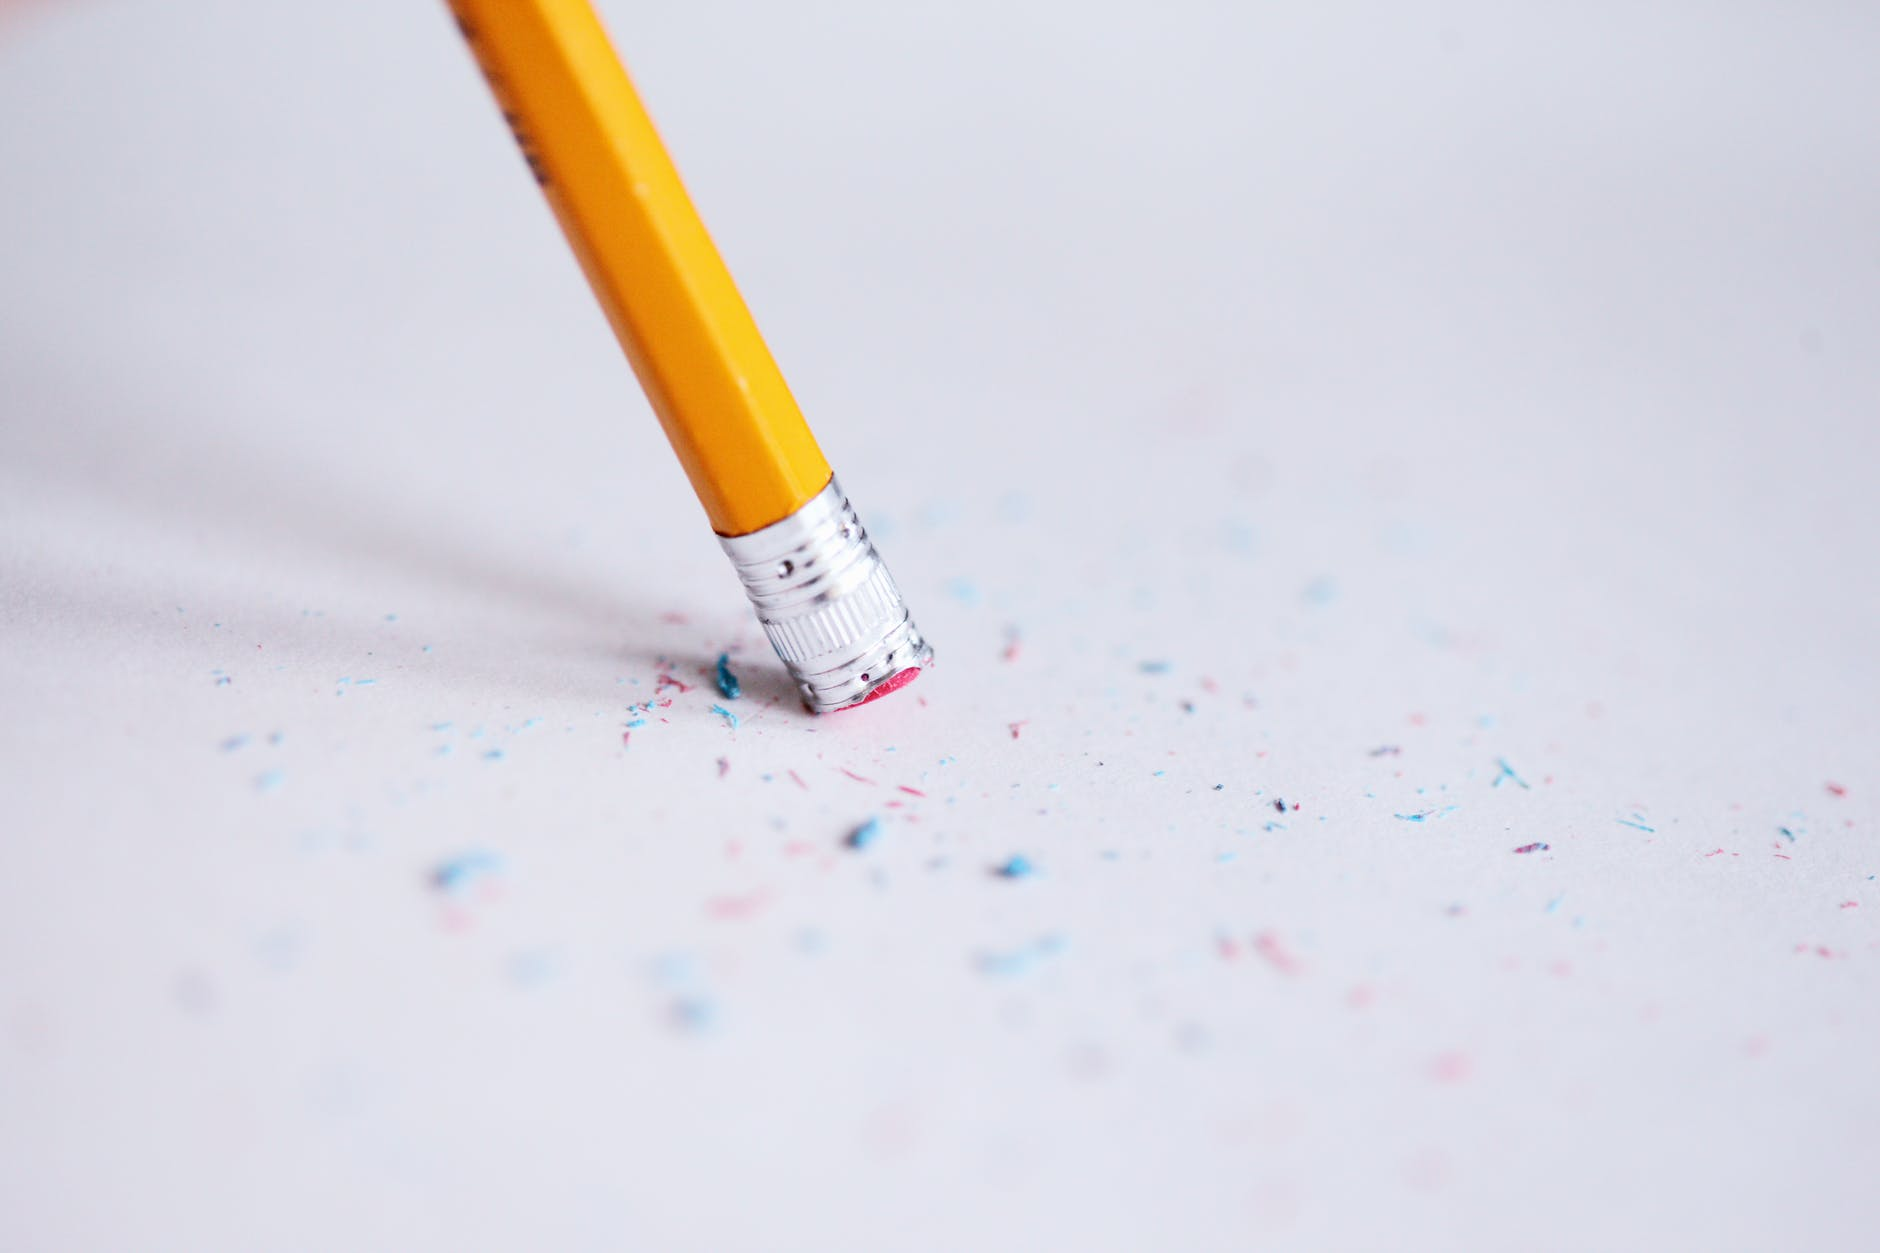 The eraser end of a number two pencil, with eraser shavings scattered around the end on the white piece of paper. Used to represent that mistakes are learning opportunities when dealing with Imposter Syndrome.